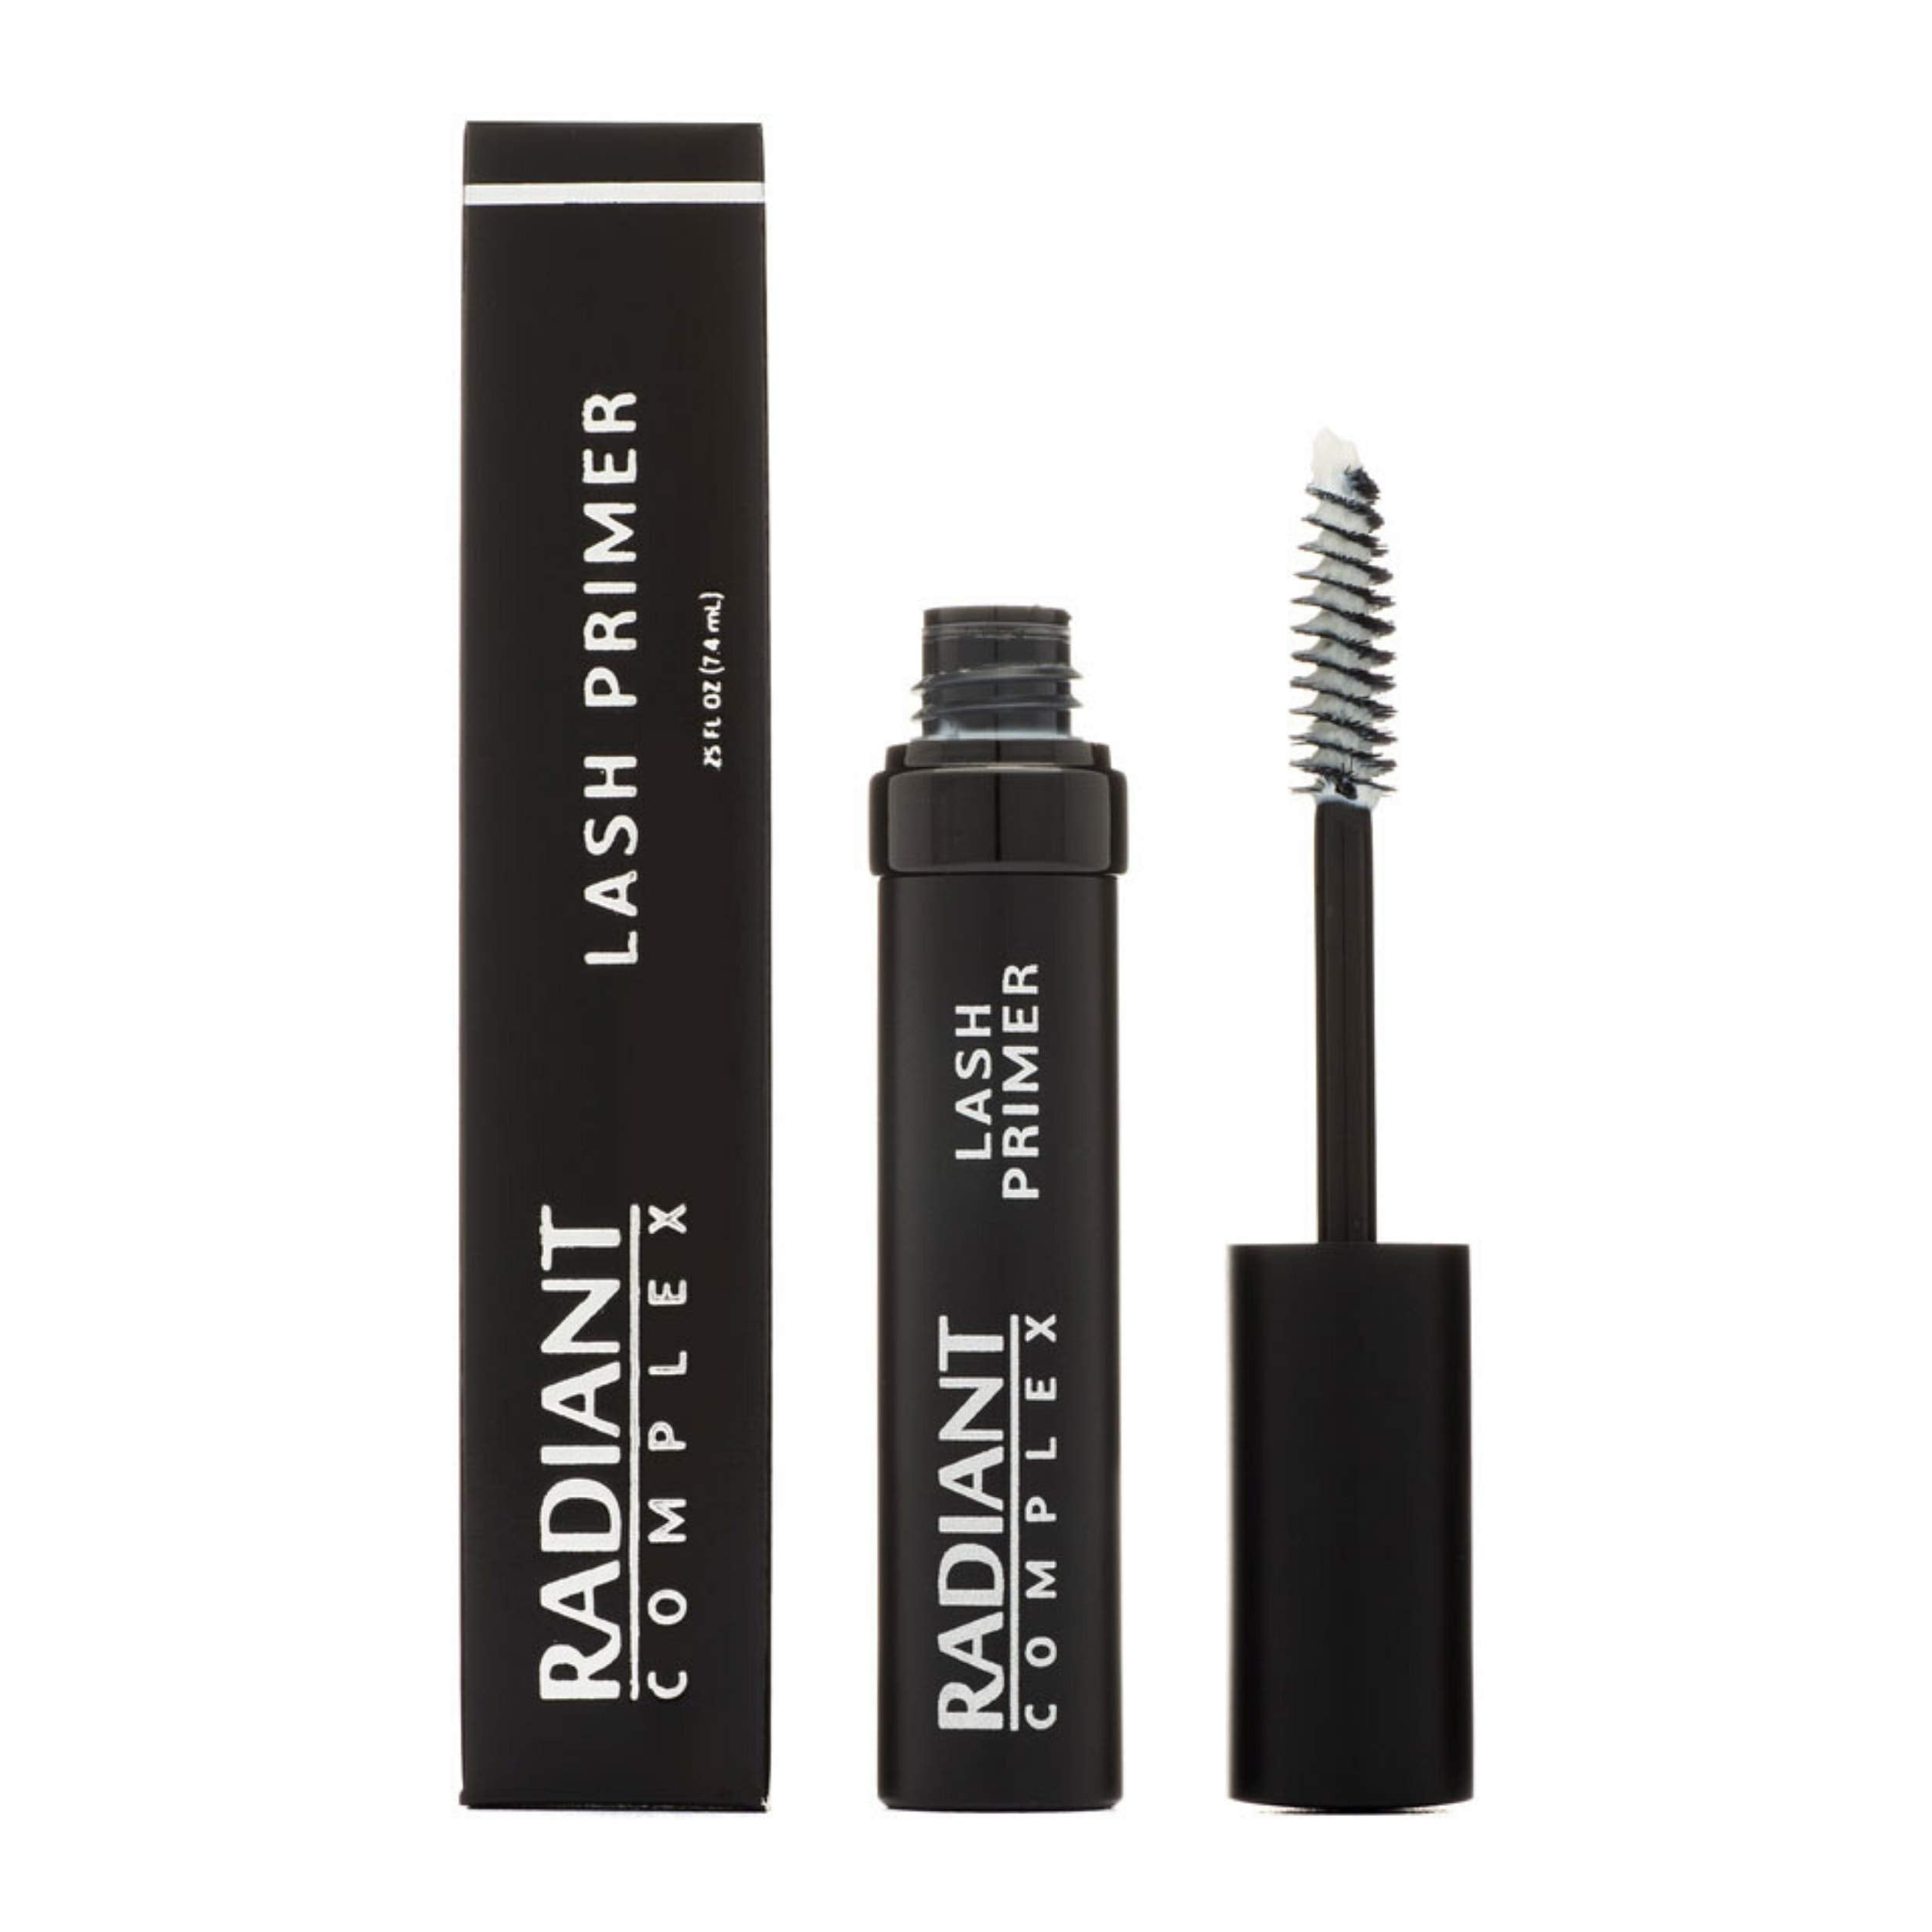 Best Eyelash Primer and Conditioner: Radiant Complex Volume Enhancing Eye Lash Primer Conditions, Enhances Volume and Lengthens Eyelashes - A Perfect, Voluminous Mascara Base, Lash Boosting Serum